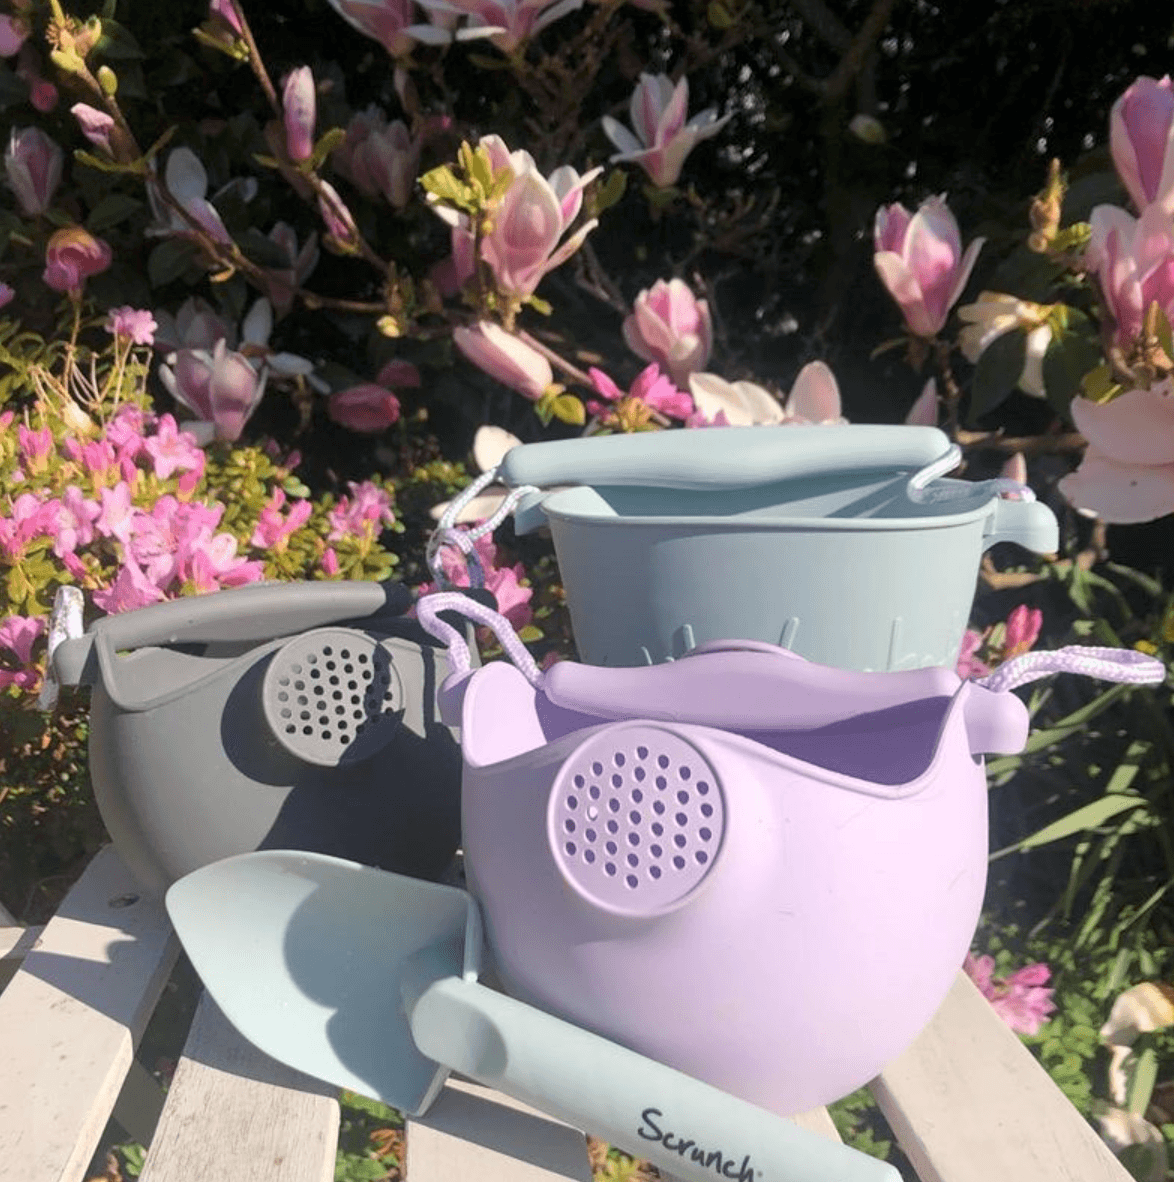 Scrunch Watering Can - Dusty Rose - Scrunch